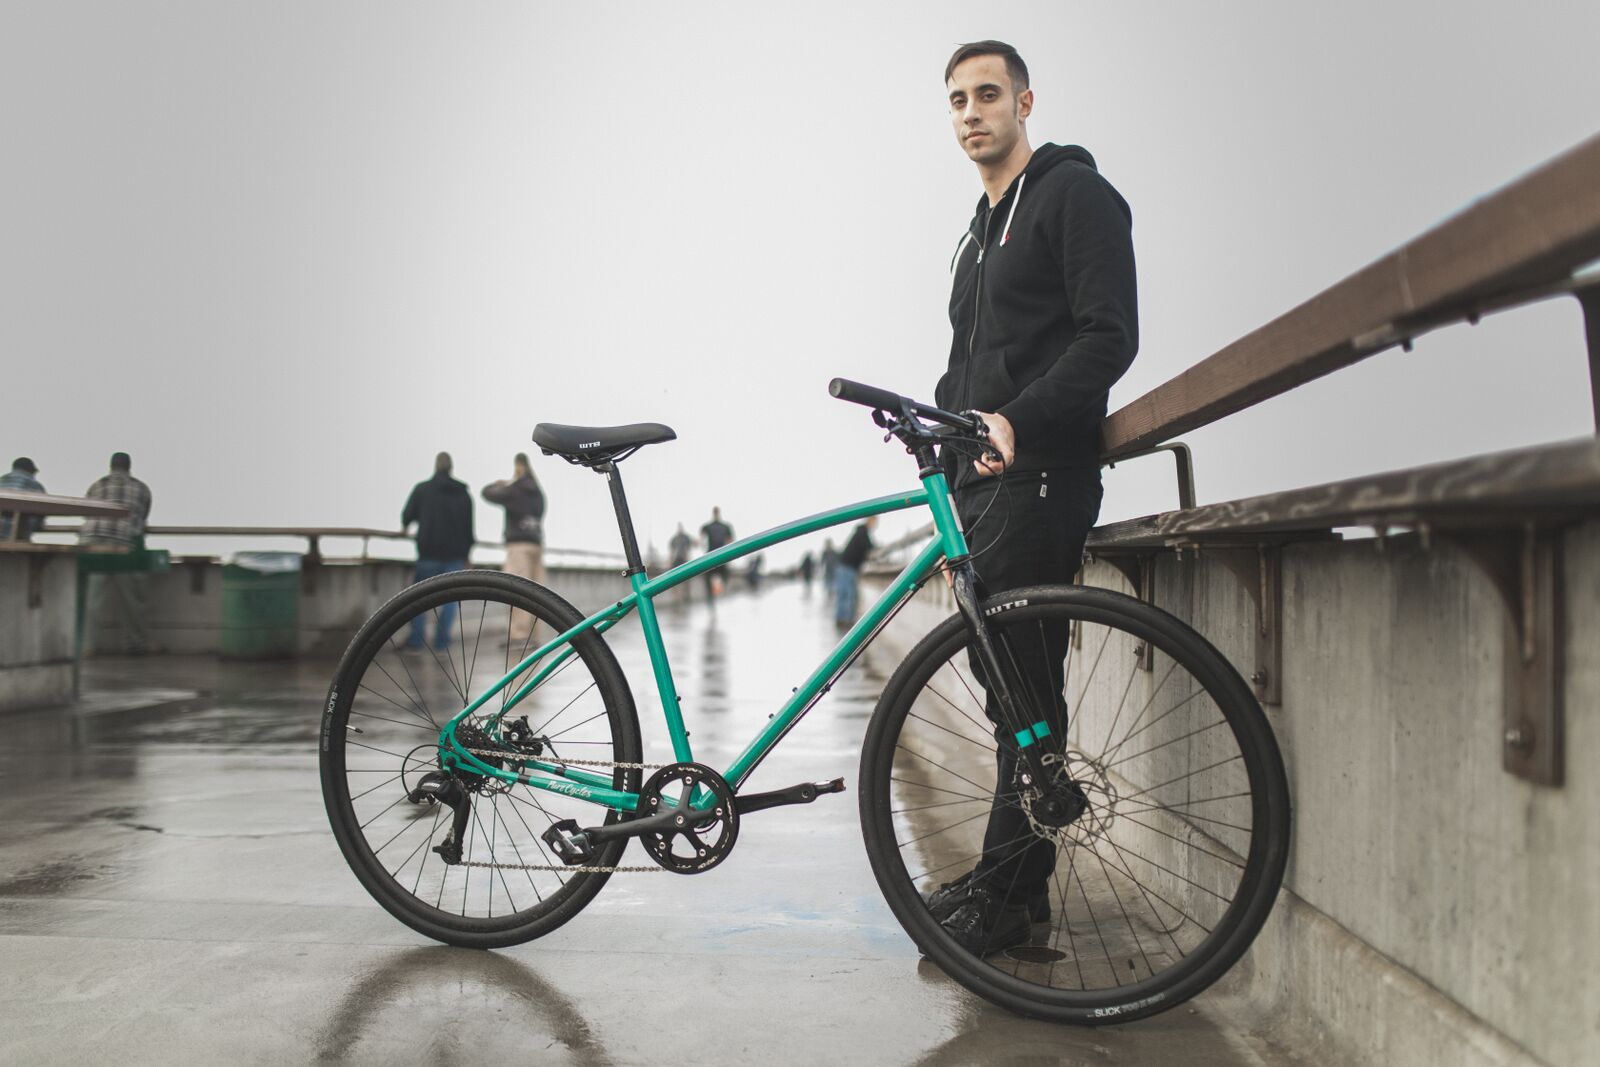 b038a4de890 ... creating genuinely cool bikes that don't rest on their laurels of  looking great but also emphasise the importance of performance. Their Urban  Commuter ...